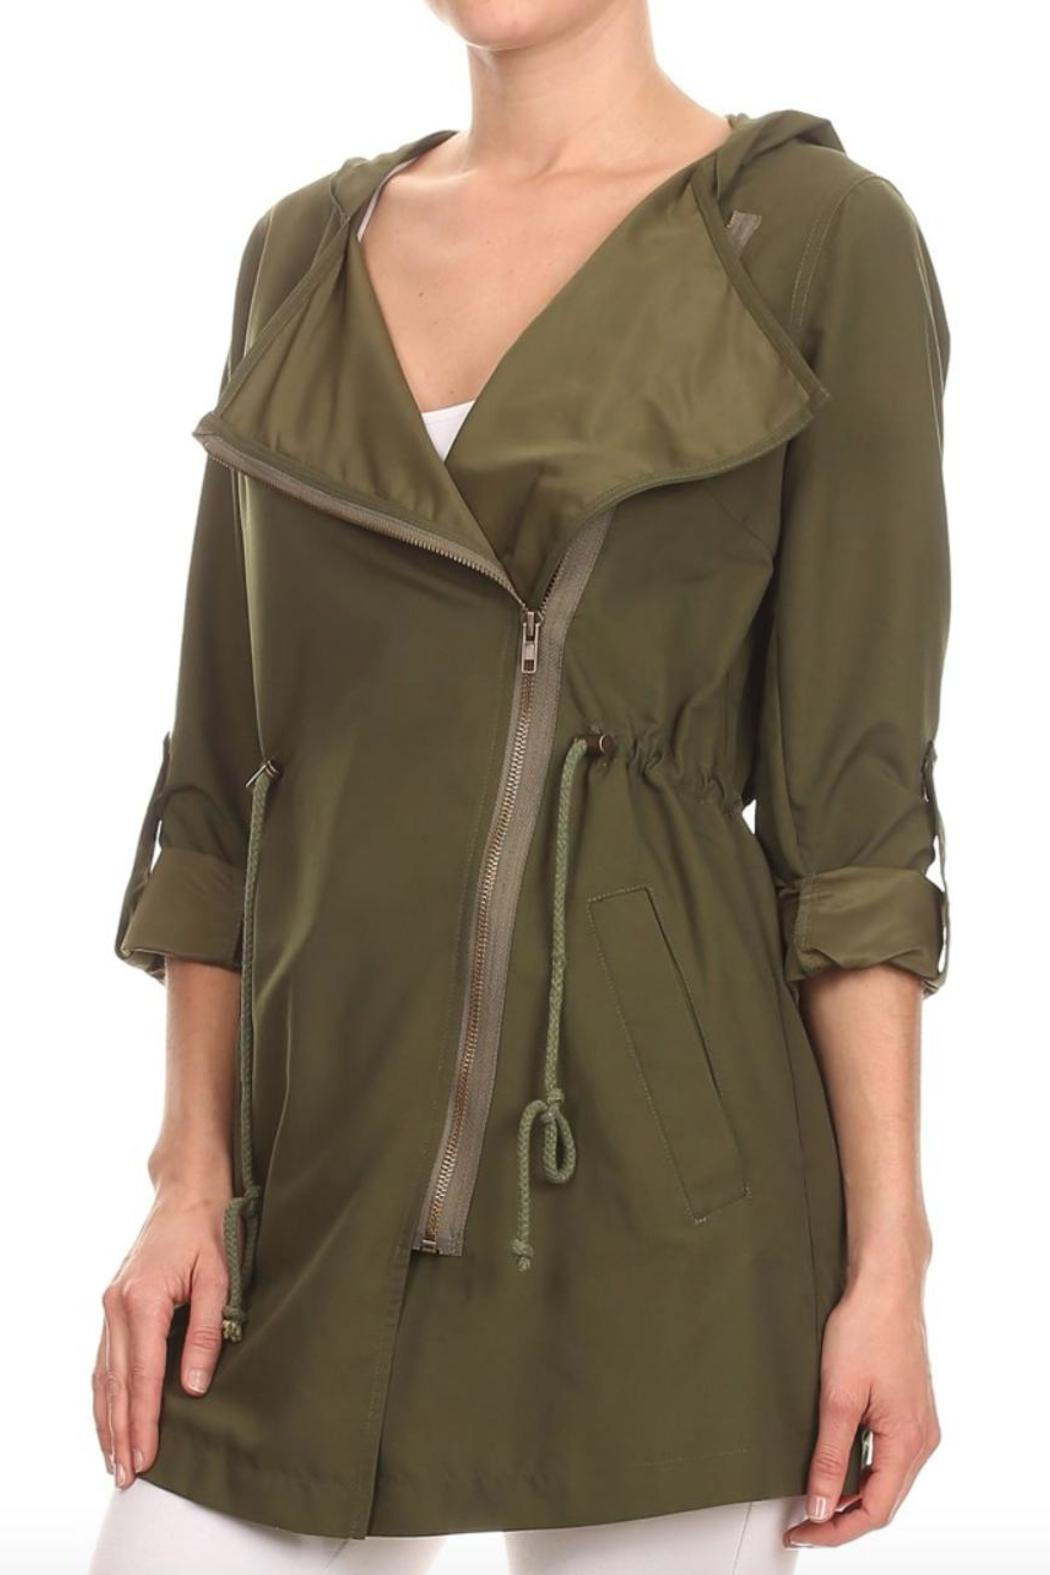 Haute Monde Summer Rain Jacket from Illinois by Gentry Boutique ...